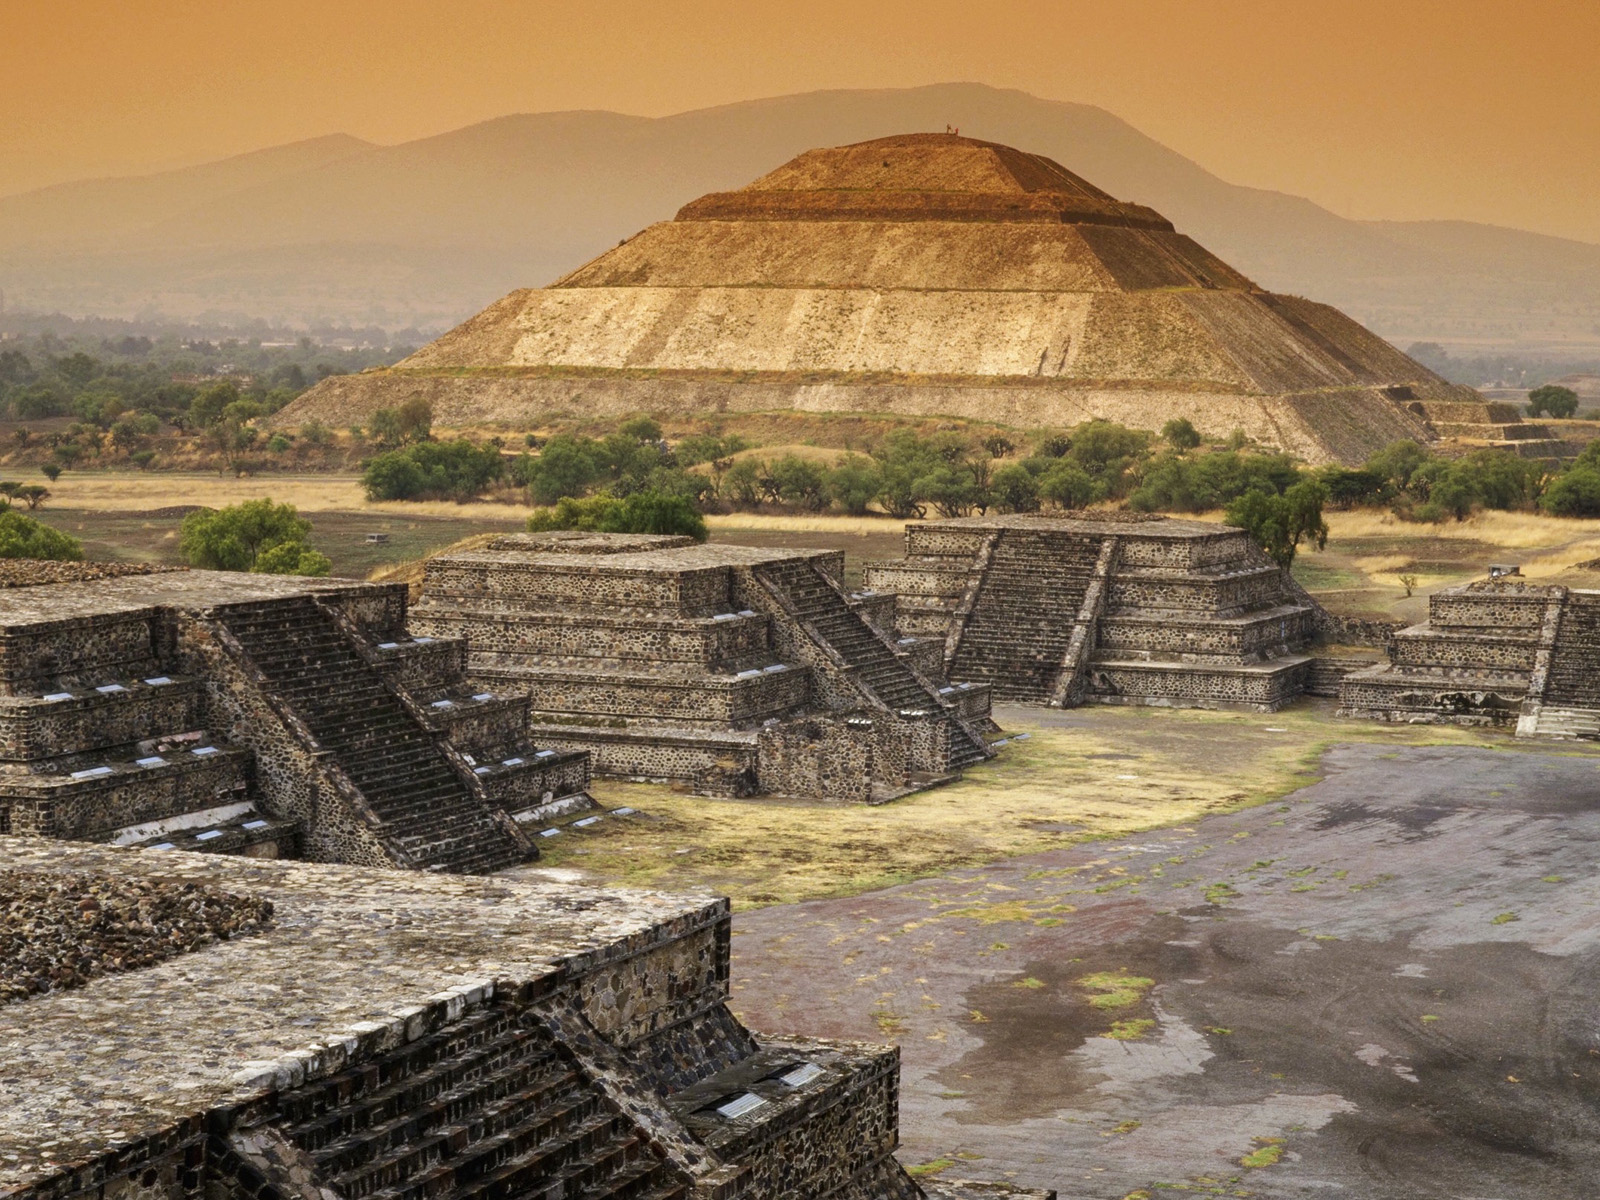 """teotihuacan Teotihuacan, mexico, main structures c 50-250 ce speakers: dr lauren kilroy-ewbank and dr beth harris metropolis an impressive city of 125,000-200,000 inhabitants, by the 6th century, teotihuacan was the first large metropolis in the americas teotihuacan, as the city is called, is a náhuatl name that means """" the place where the gods were created """" and was given by the aztec."""